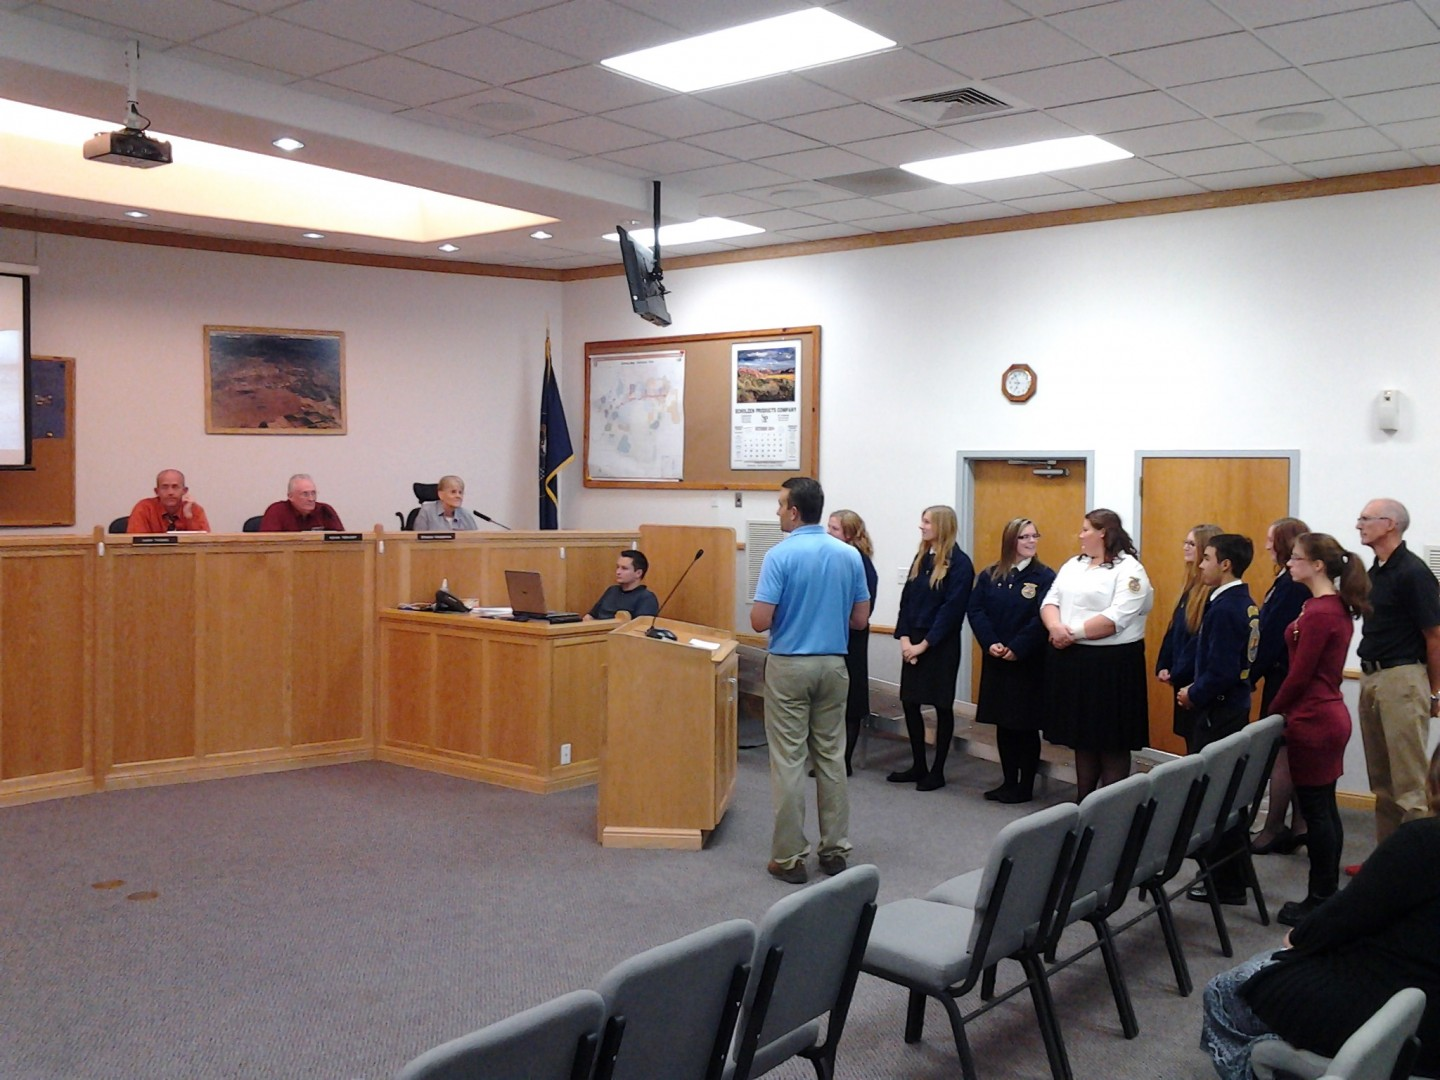 Hurricane High School FFA members present to the City Council about the community garden, Hurricane City Council Chambers, Hurricane, Utah, Oct. 2, 2014 | Photo by Reuben Wadsworth, St. George News